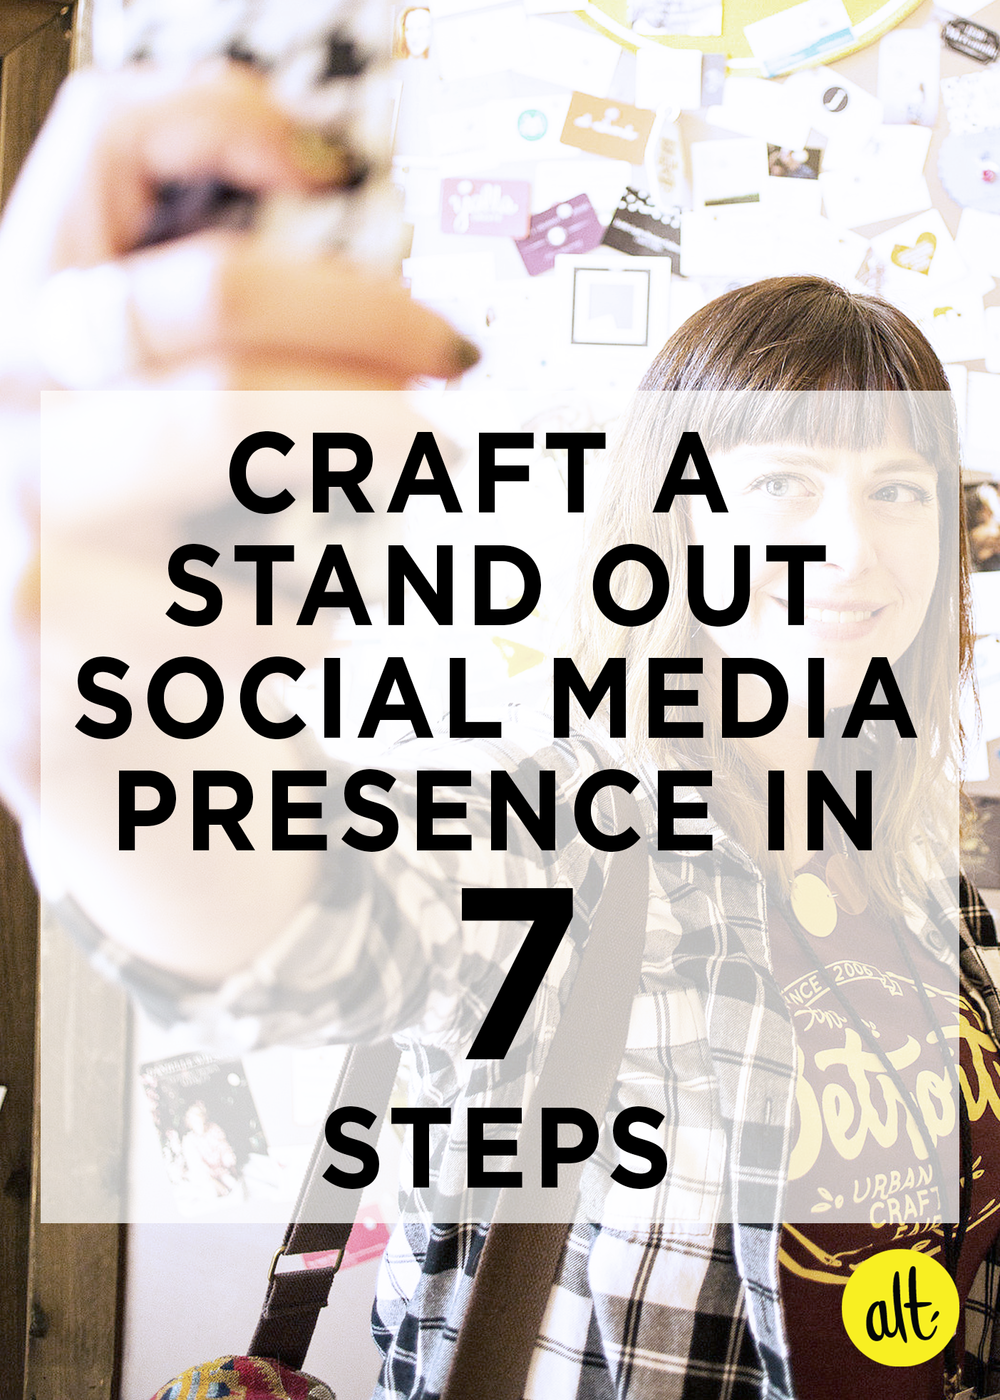 Craft-a-Standout-Social-Media-Presence-in-Seven-Steps